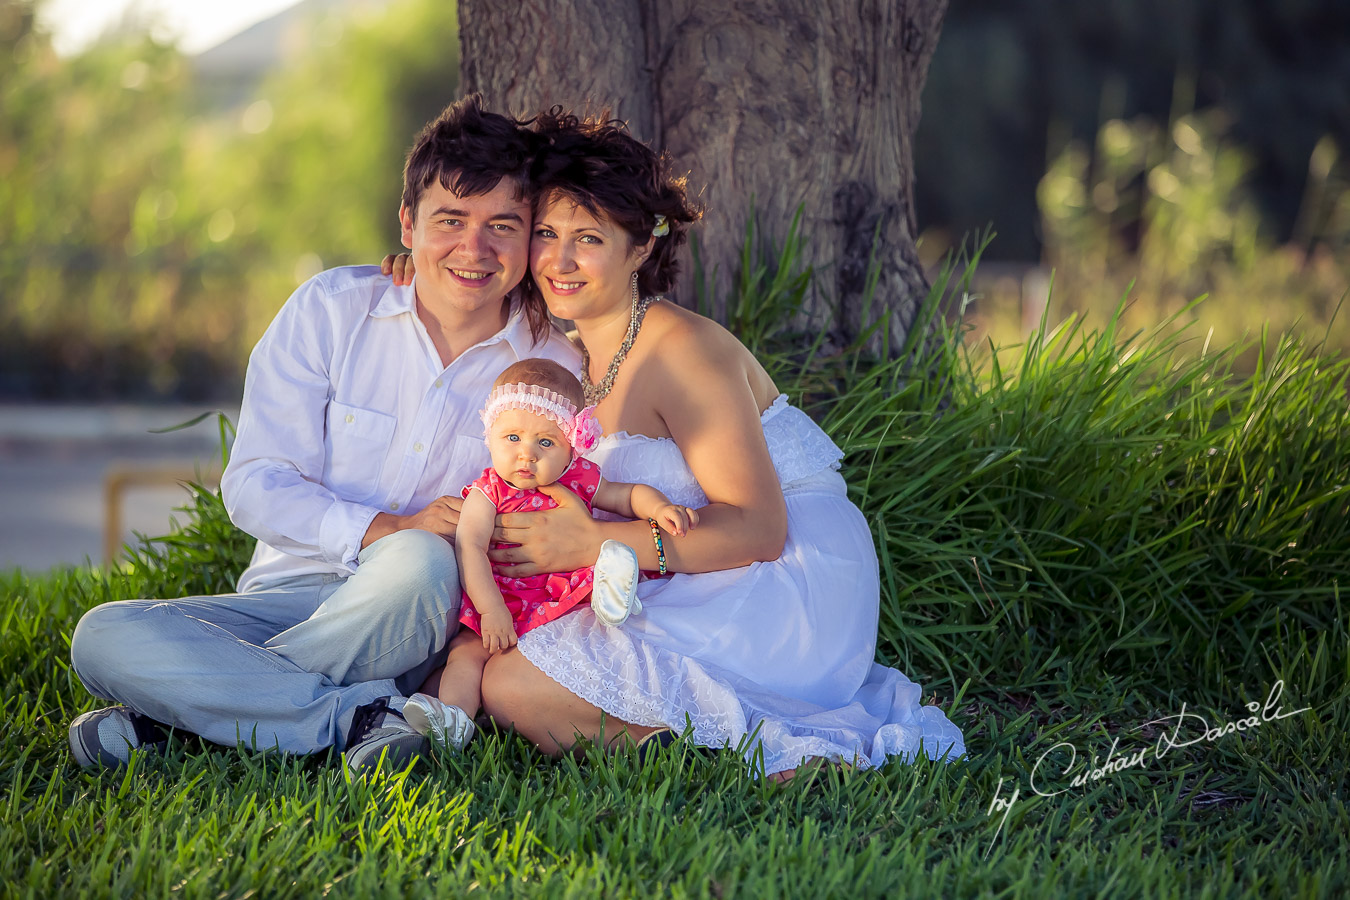 Family Photography in Limassol - Val, Val & Sofia-Aida 10